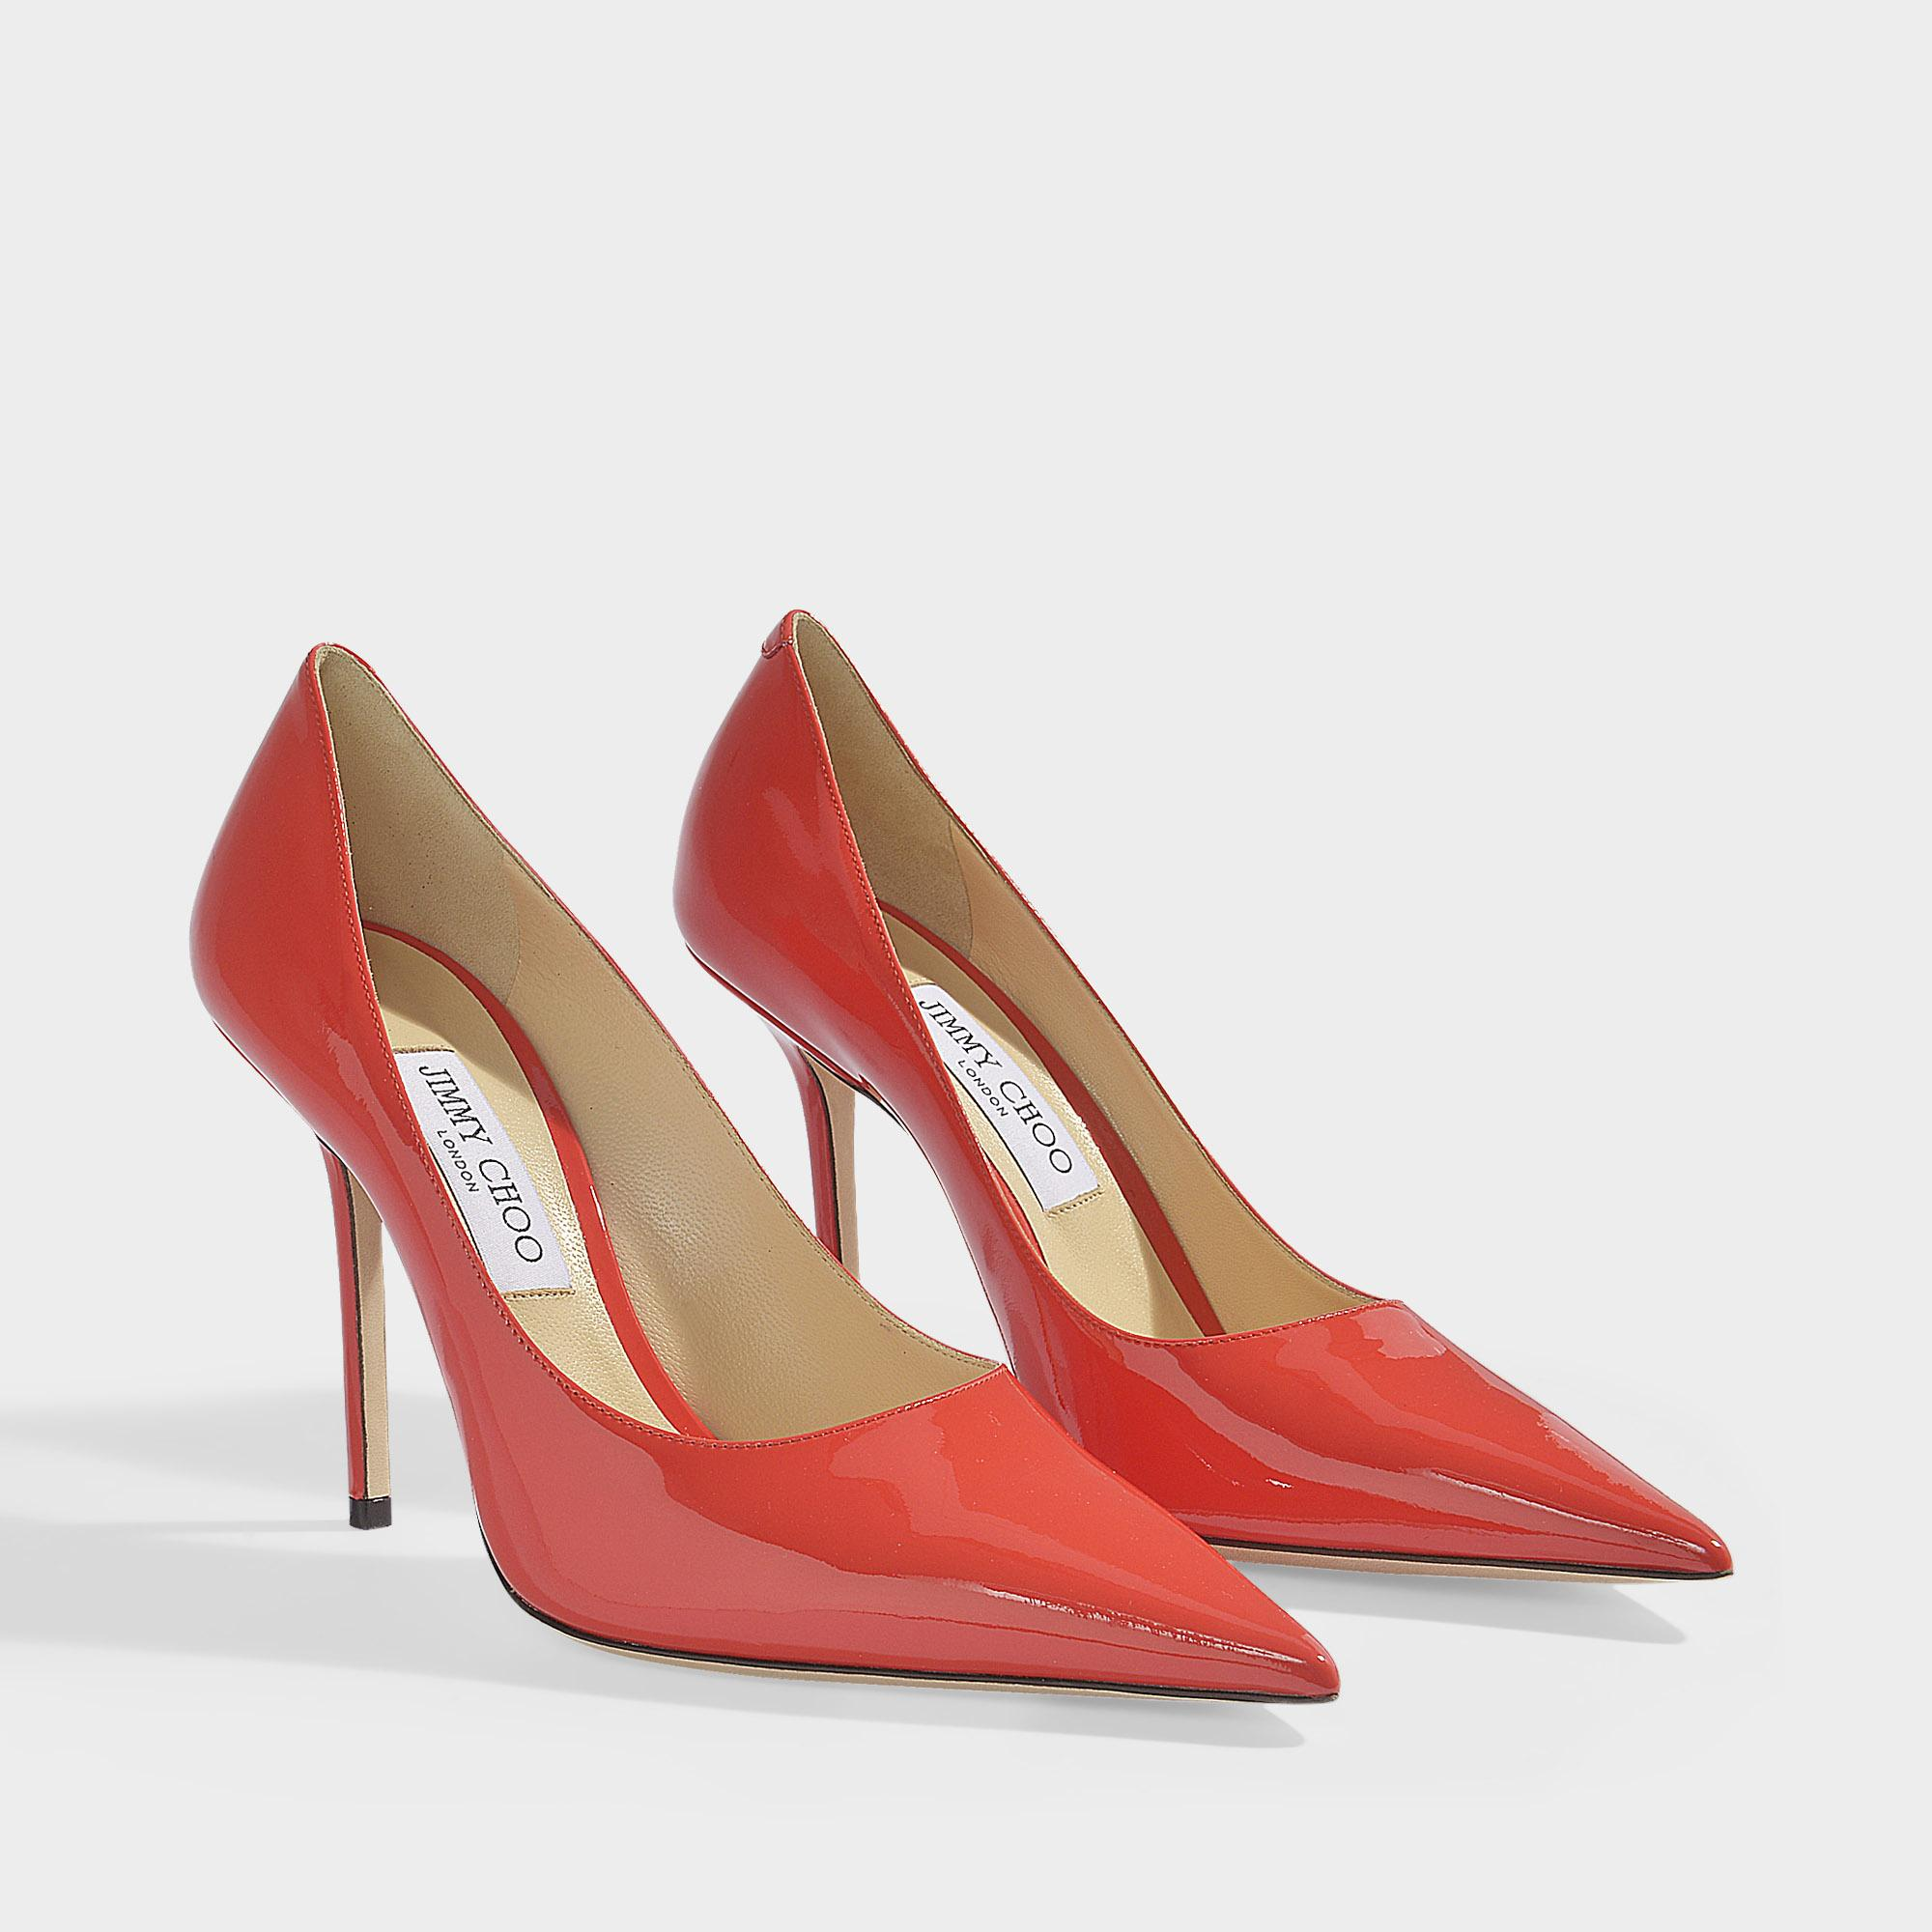 5ce1e9d6d Jimmy Choo - Red Love 100 Pumps In Chilli Patent Leather - Lyst. View  fullscreen